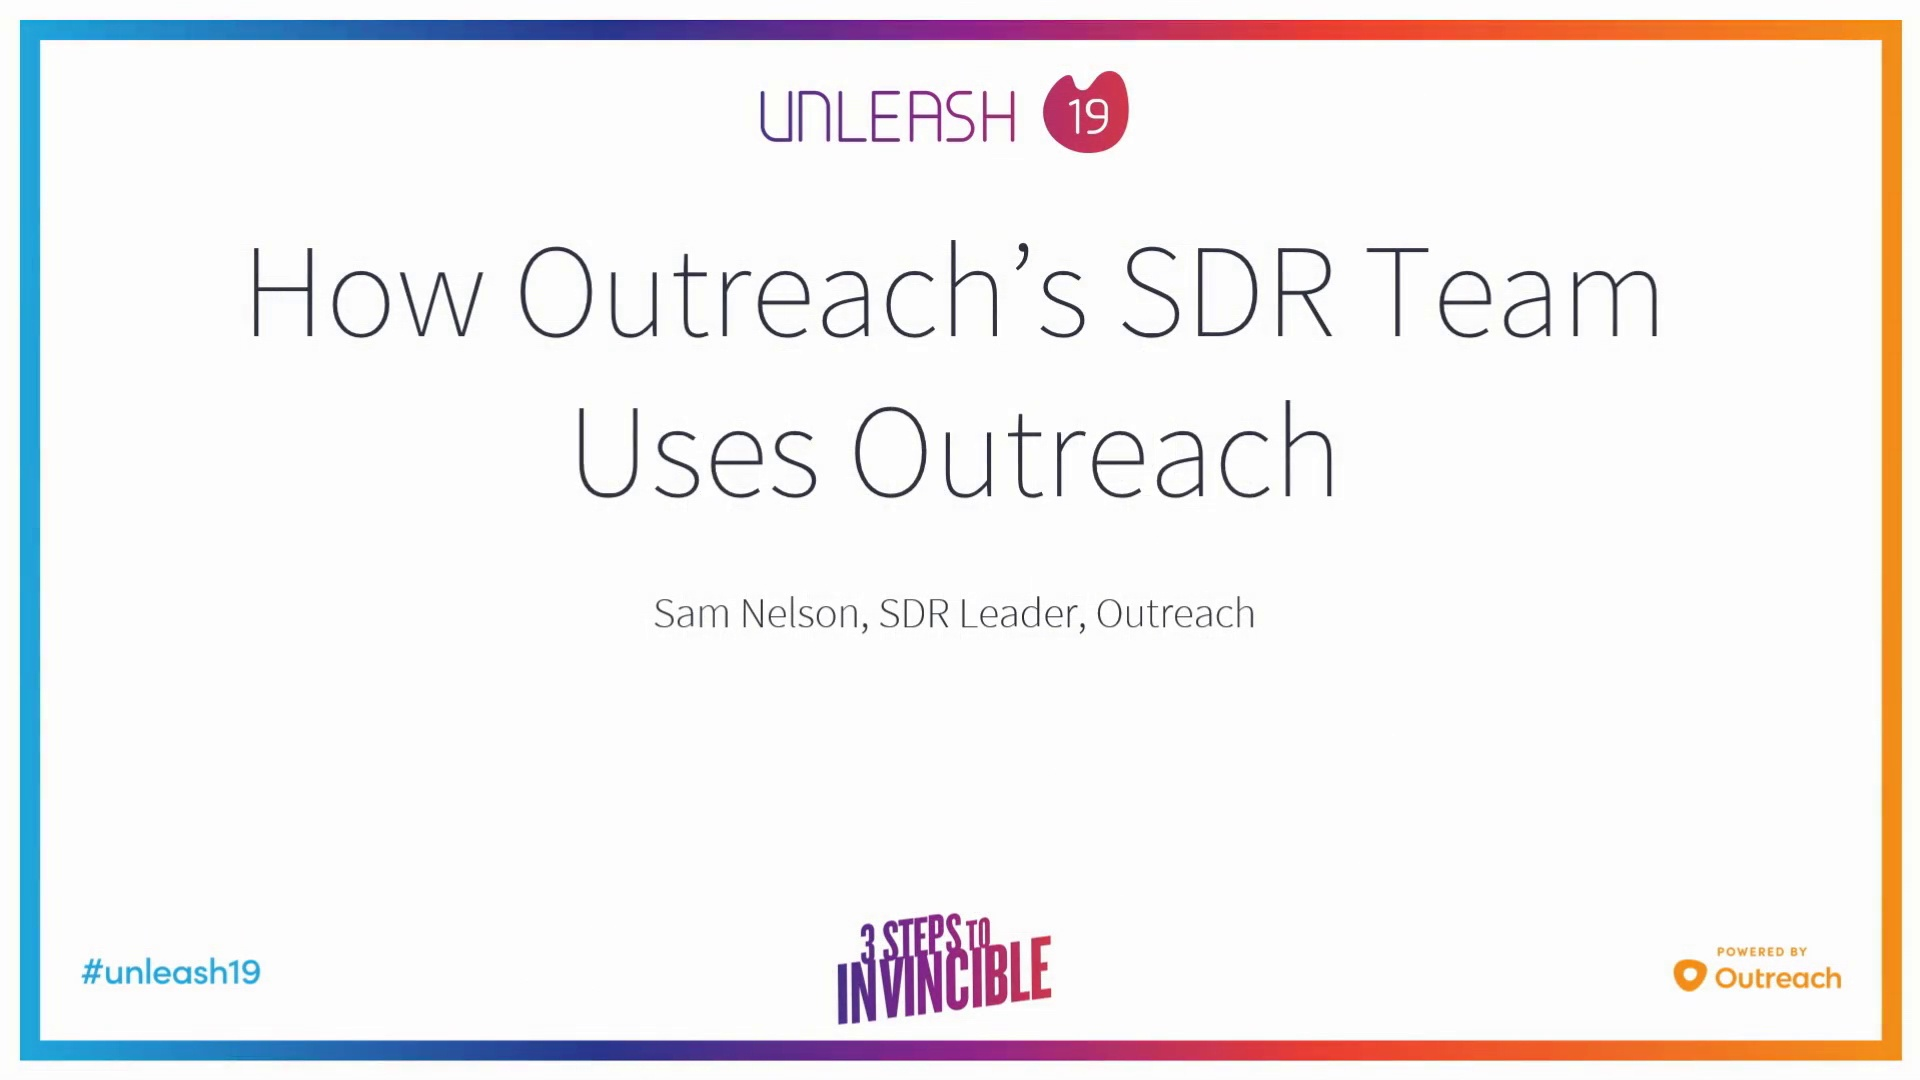 How Outreach's SDR Team Uses Outreach - Sam Nelson